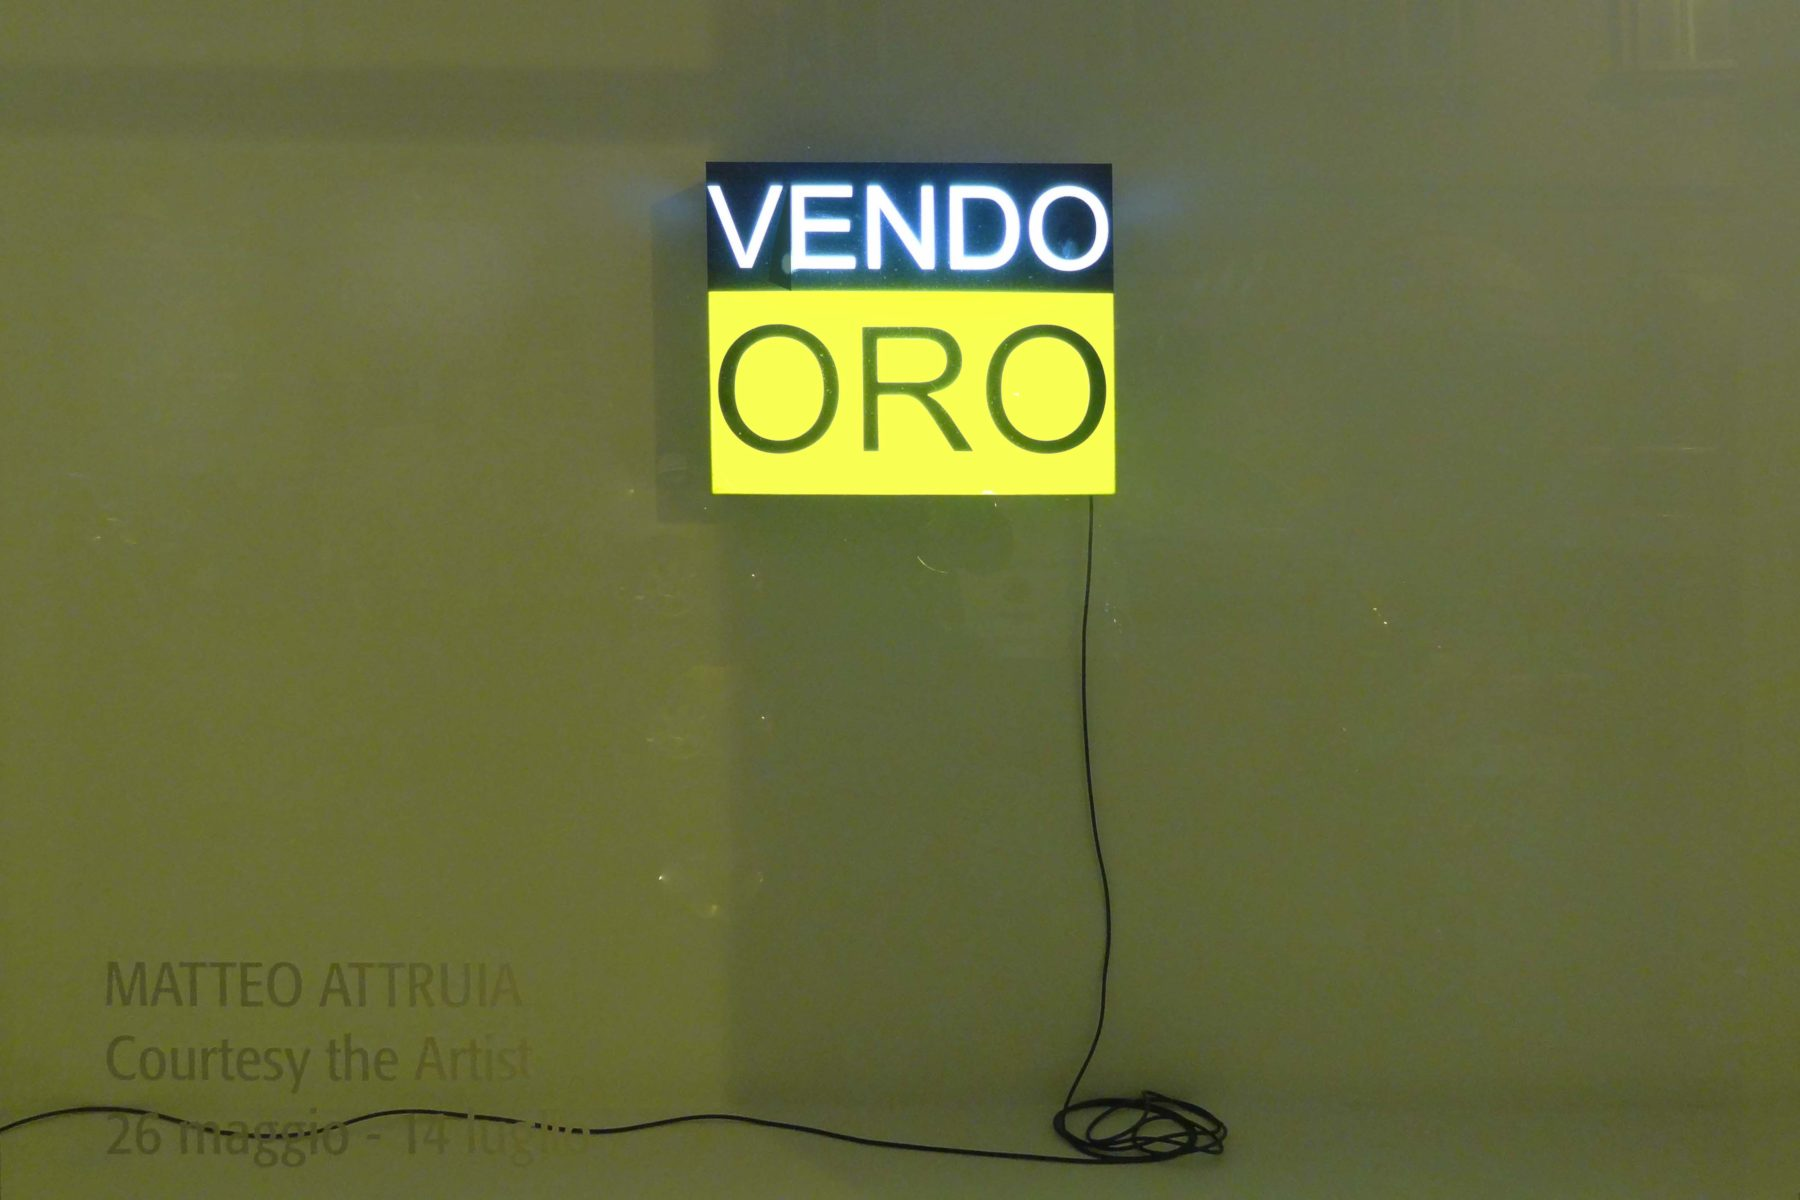 Matteo Attruia, Vendo Oro, 2012, lightbox